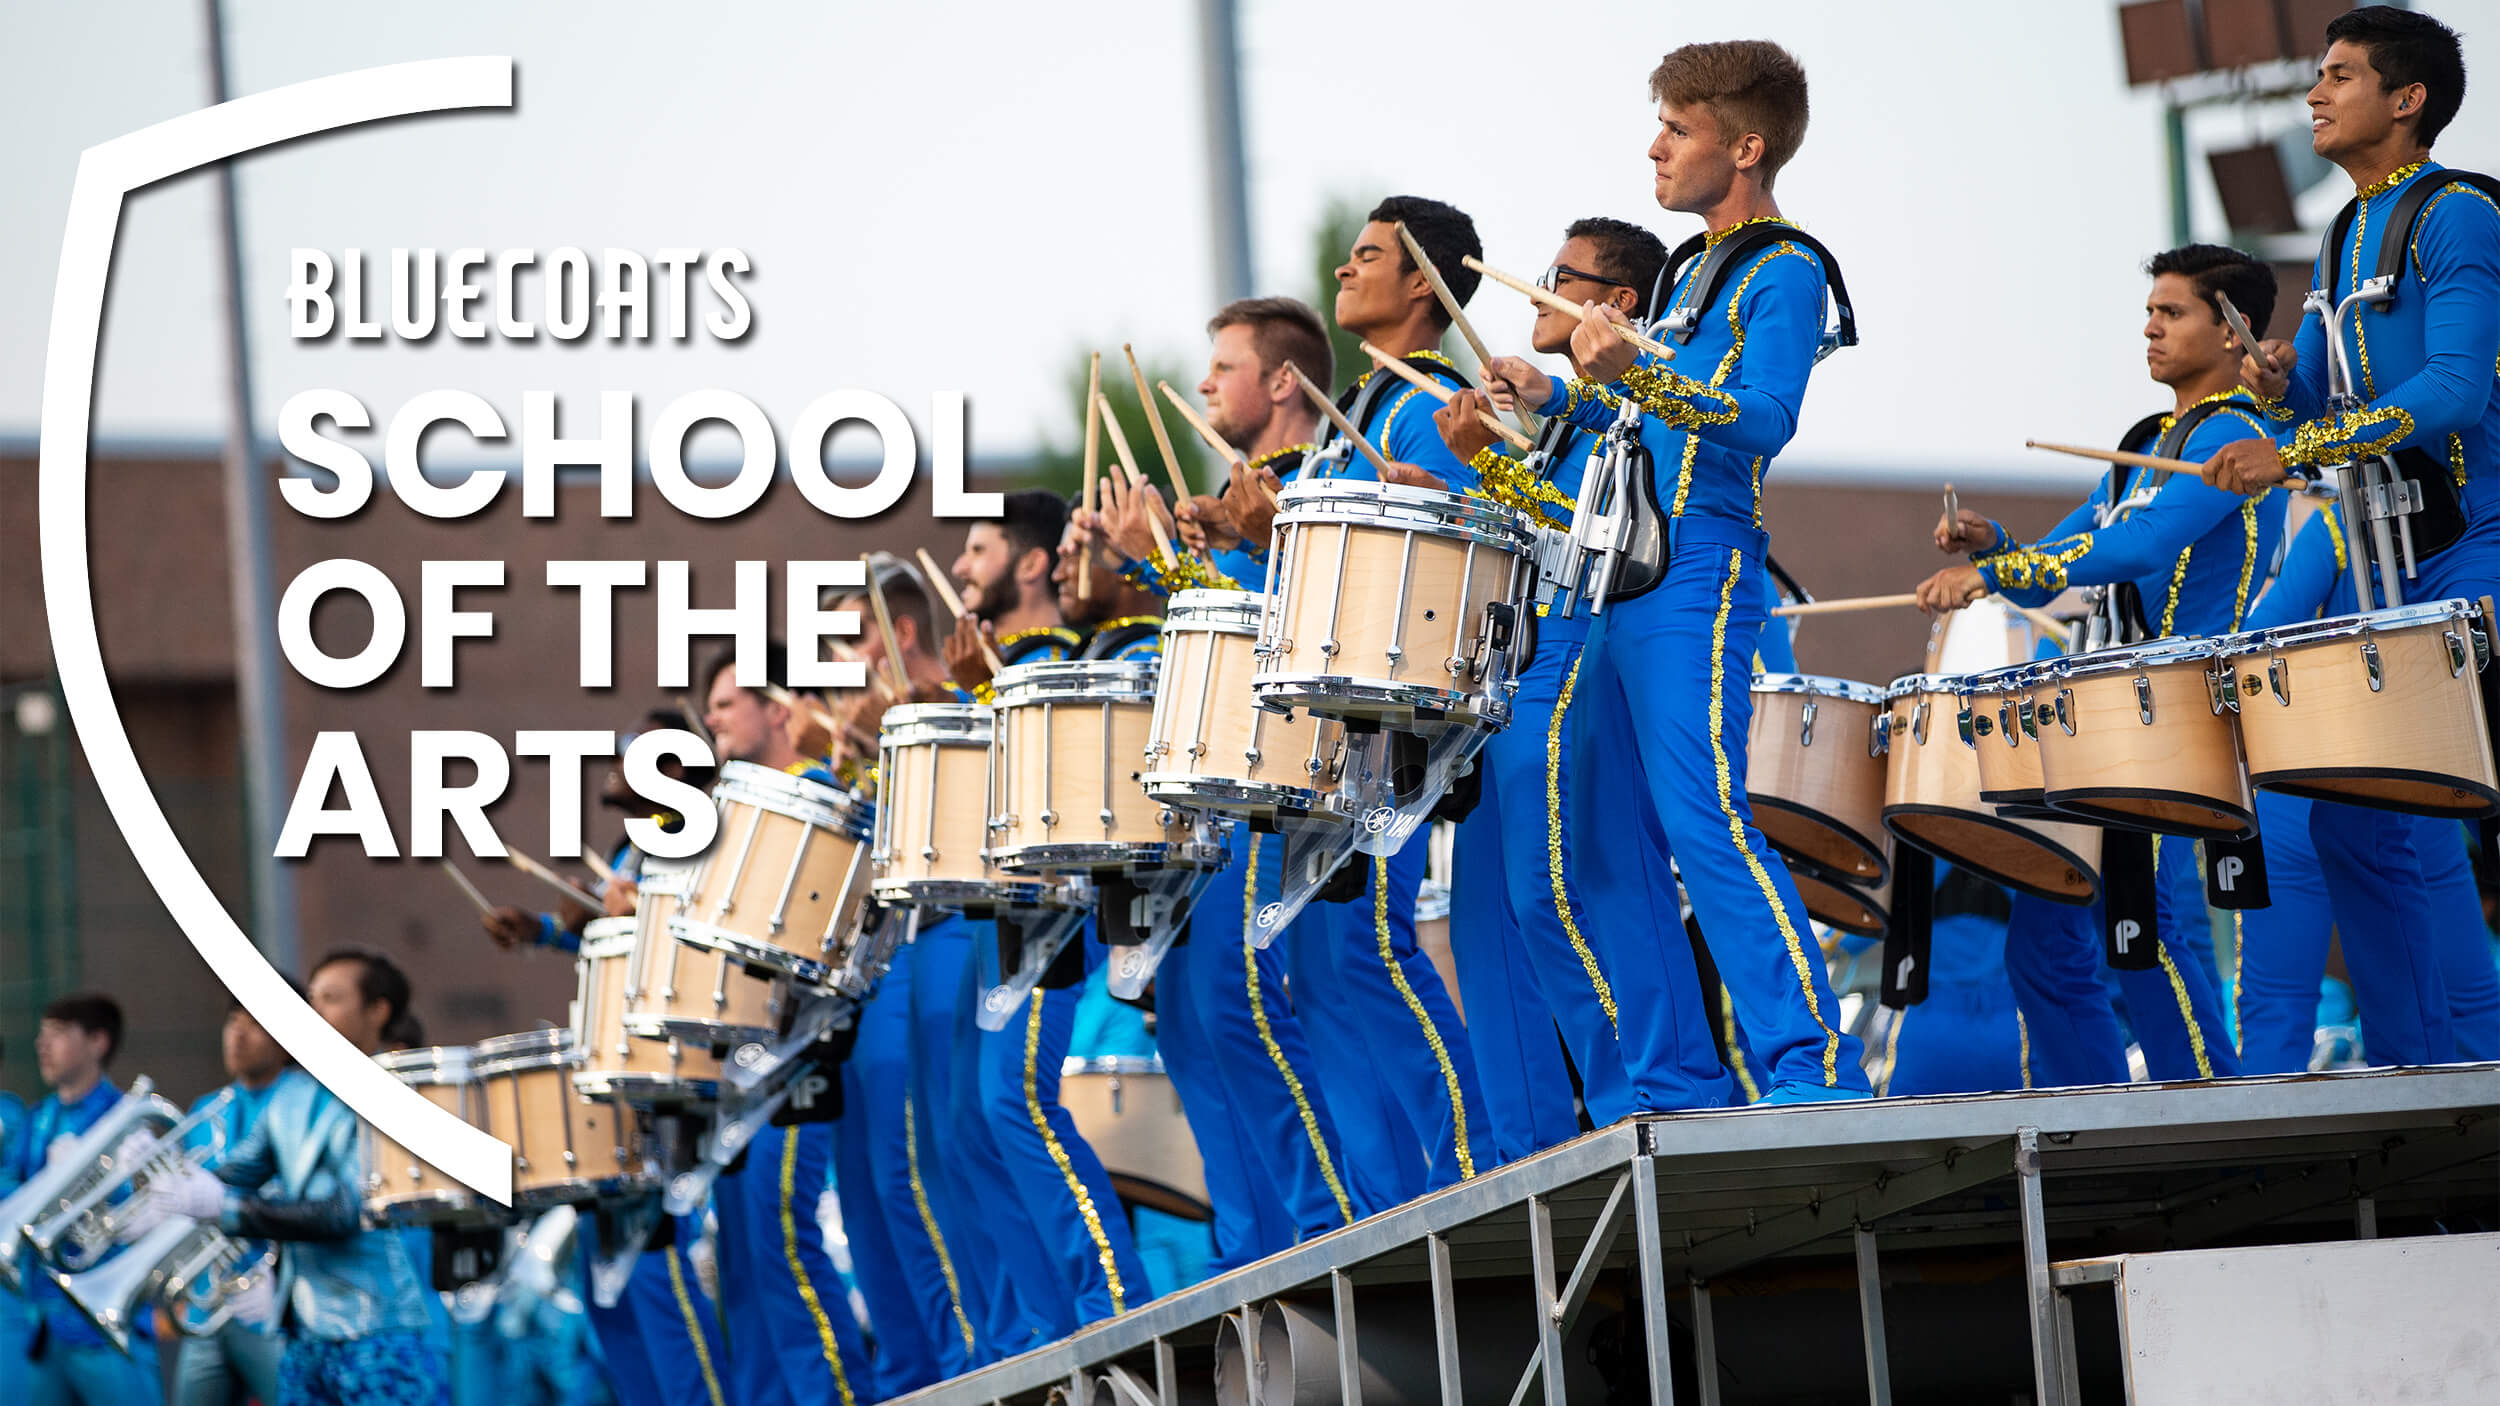 Bluecoats pave new digital avenues with School of the Arts and Learning Access